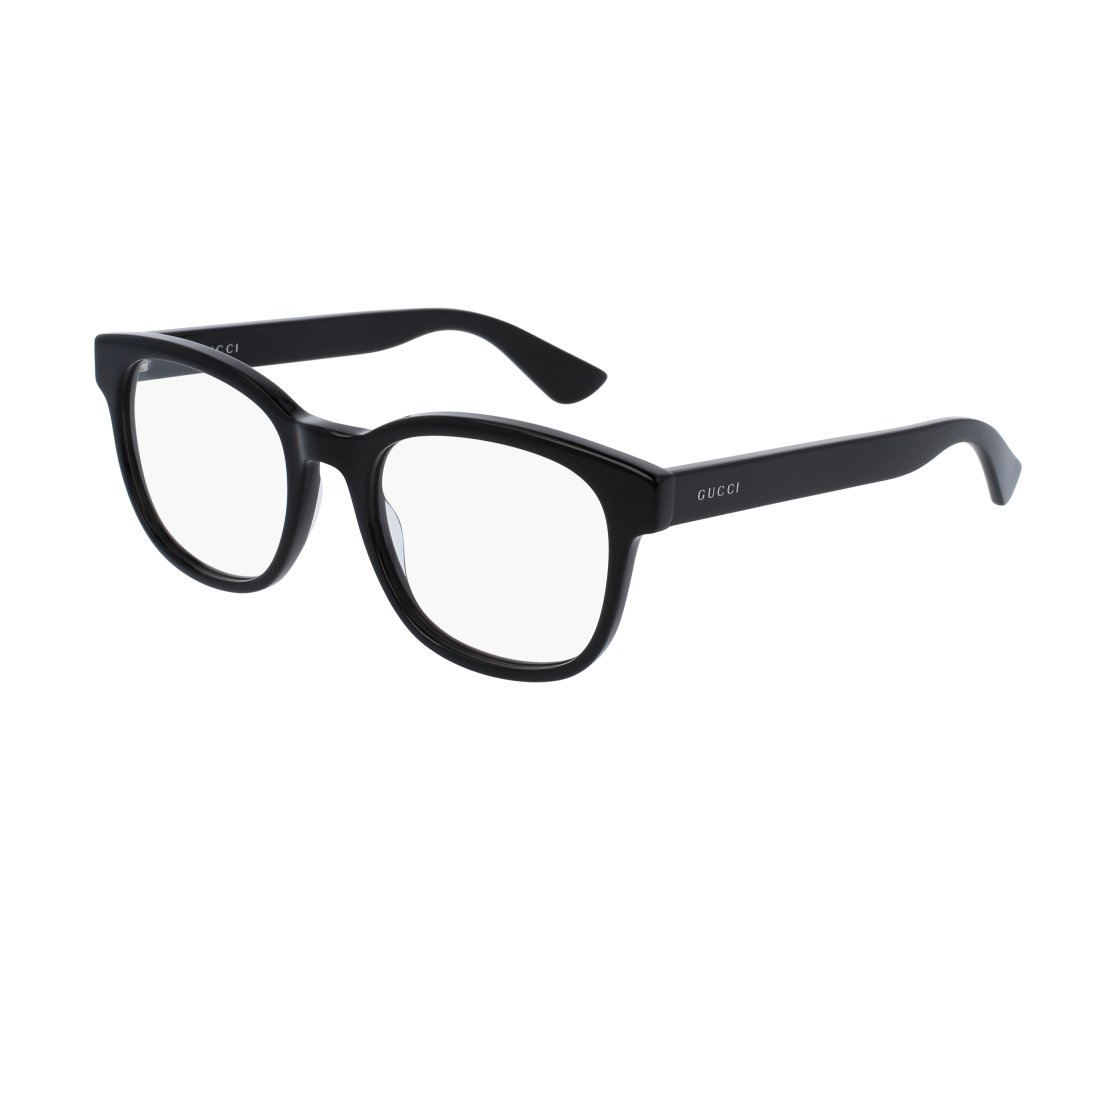 Gucci GG 0005O 005 Black Plastic Square Eyeglasses 53mm by Gucci